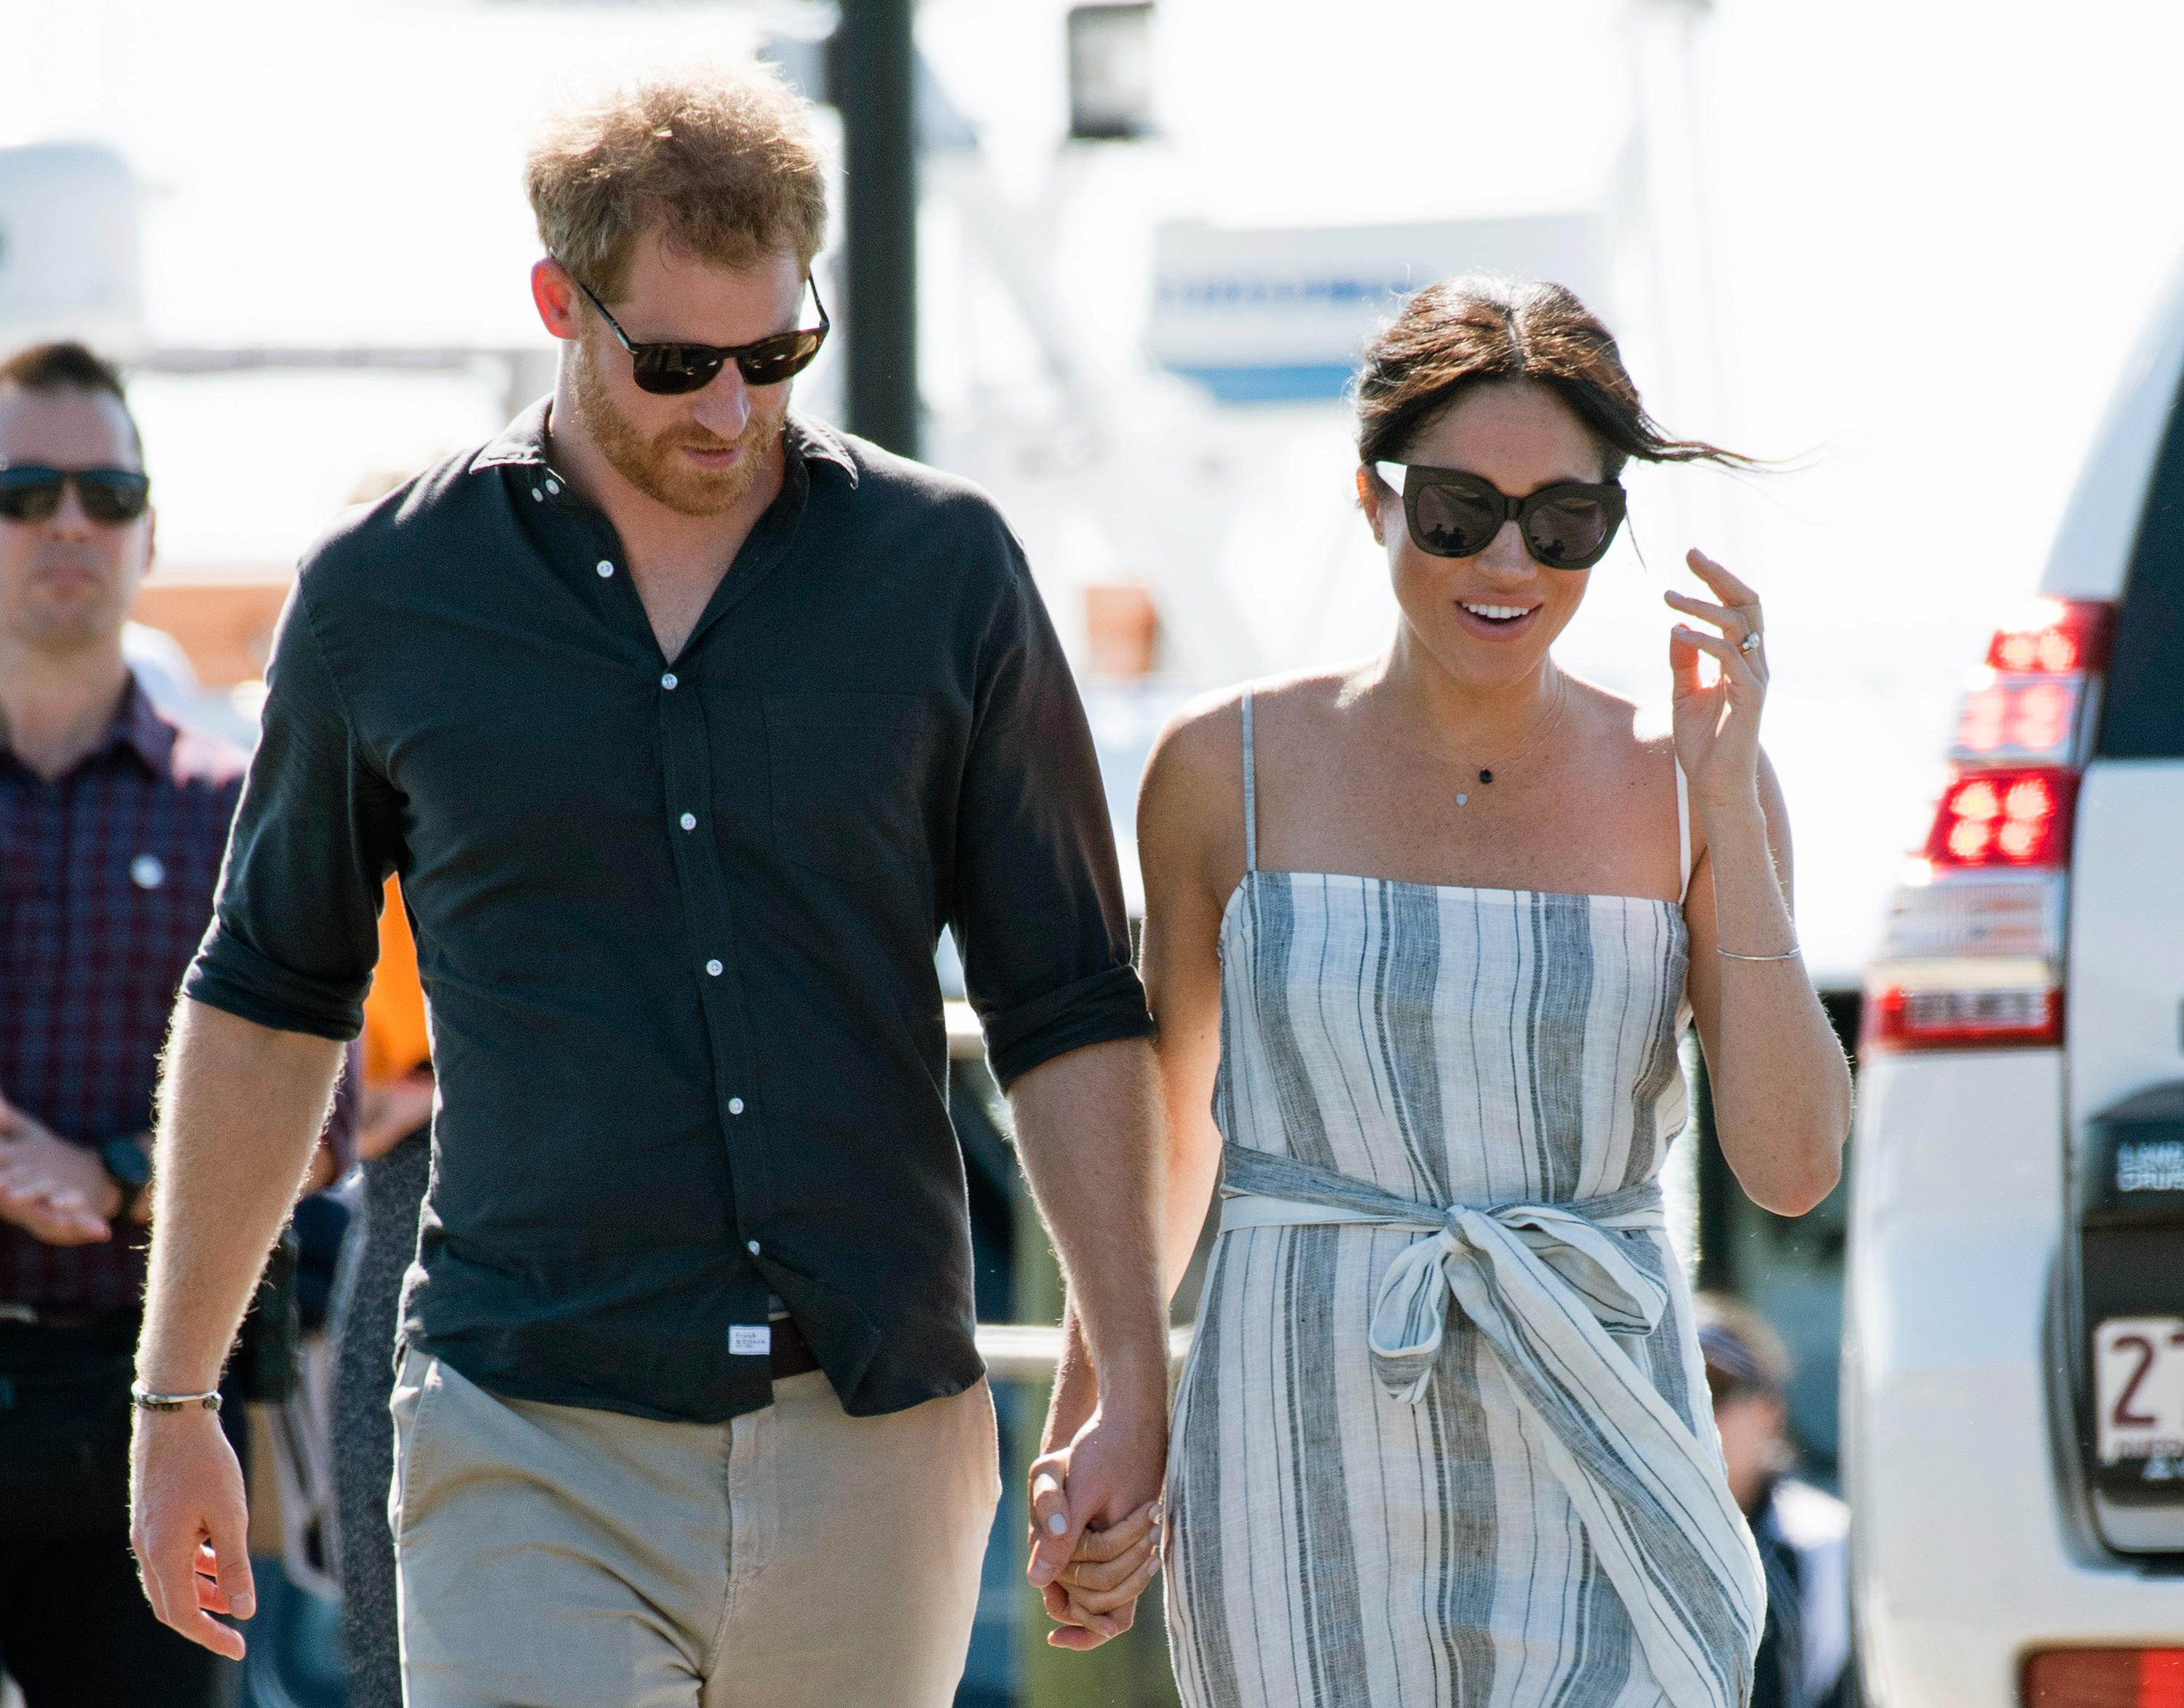 FRASER ISLAND, QUEENSLAND - OCTOBER 22: (NO UK SALES FOR 28 DAYS) Prince Harry, Duke of Sussex and Meghan, Duchess of Sussex visit Kingfisher Bay Resort on October 22, 2018 in Fraser Island, Australia. The Duke and Duchess of Sussex are on their official 16-day Autumn tour visiting cities in Australia, Fiji, Tonga and New Zealand. (Photo by Pool/Samir Hussein/WireImage)